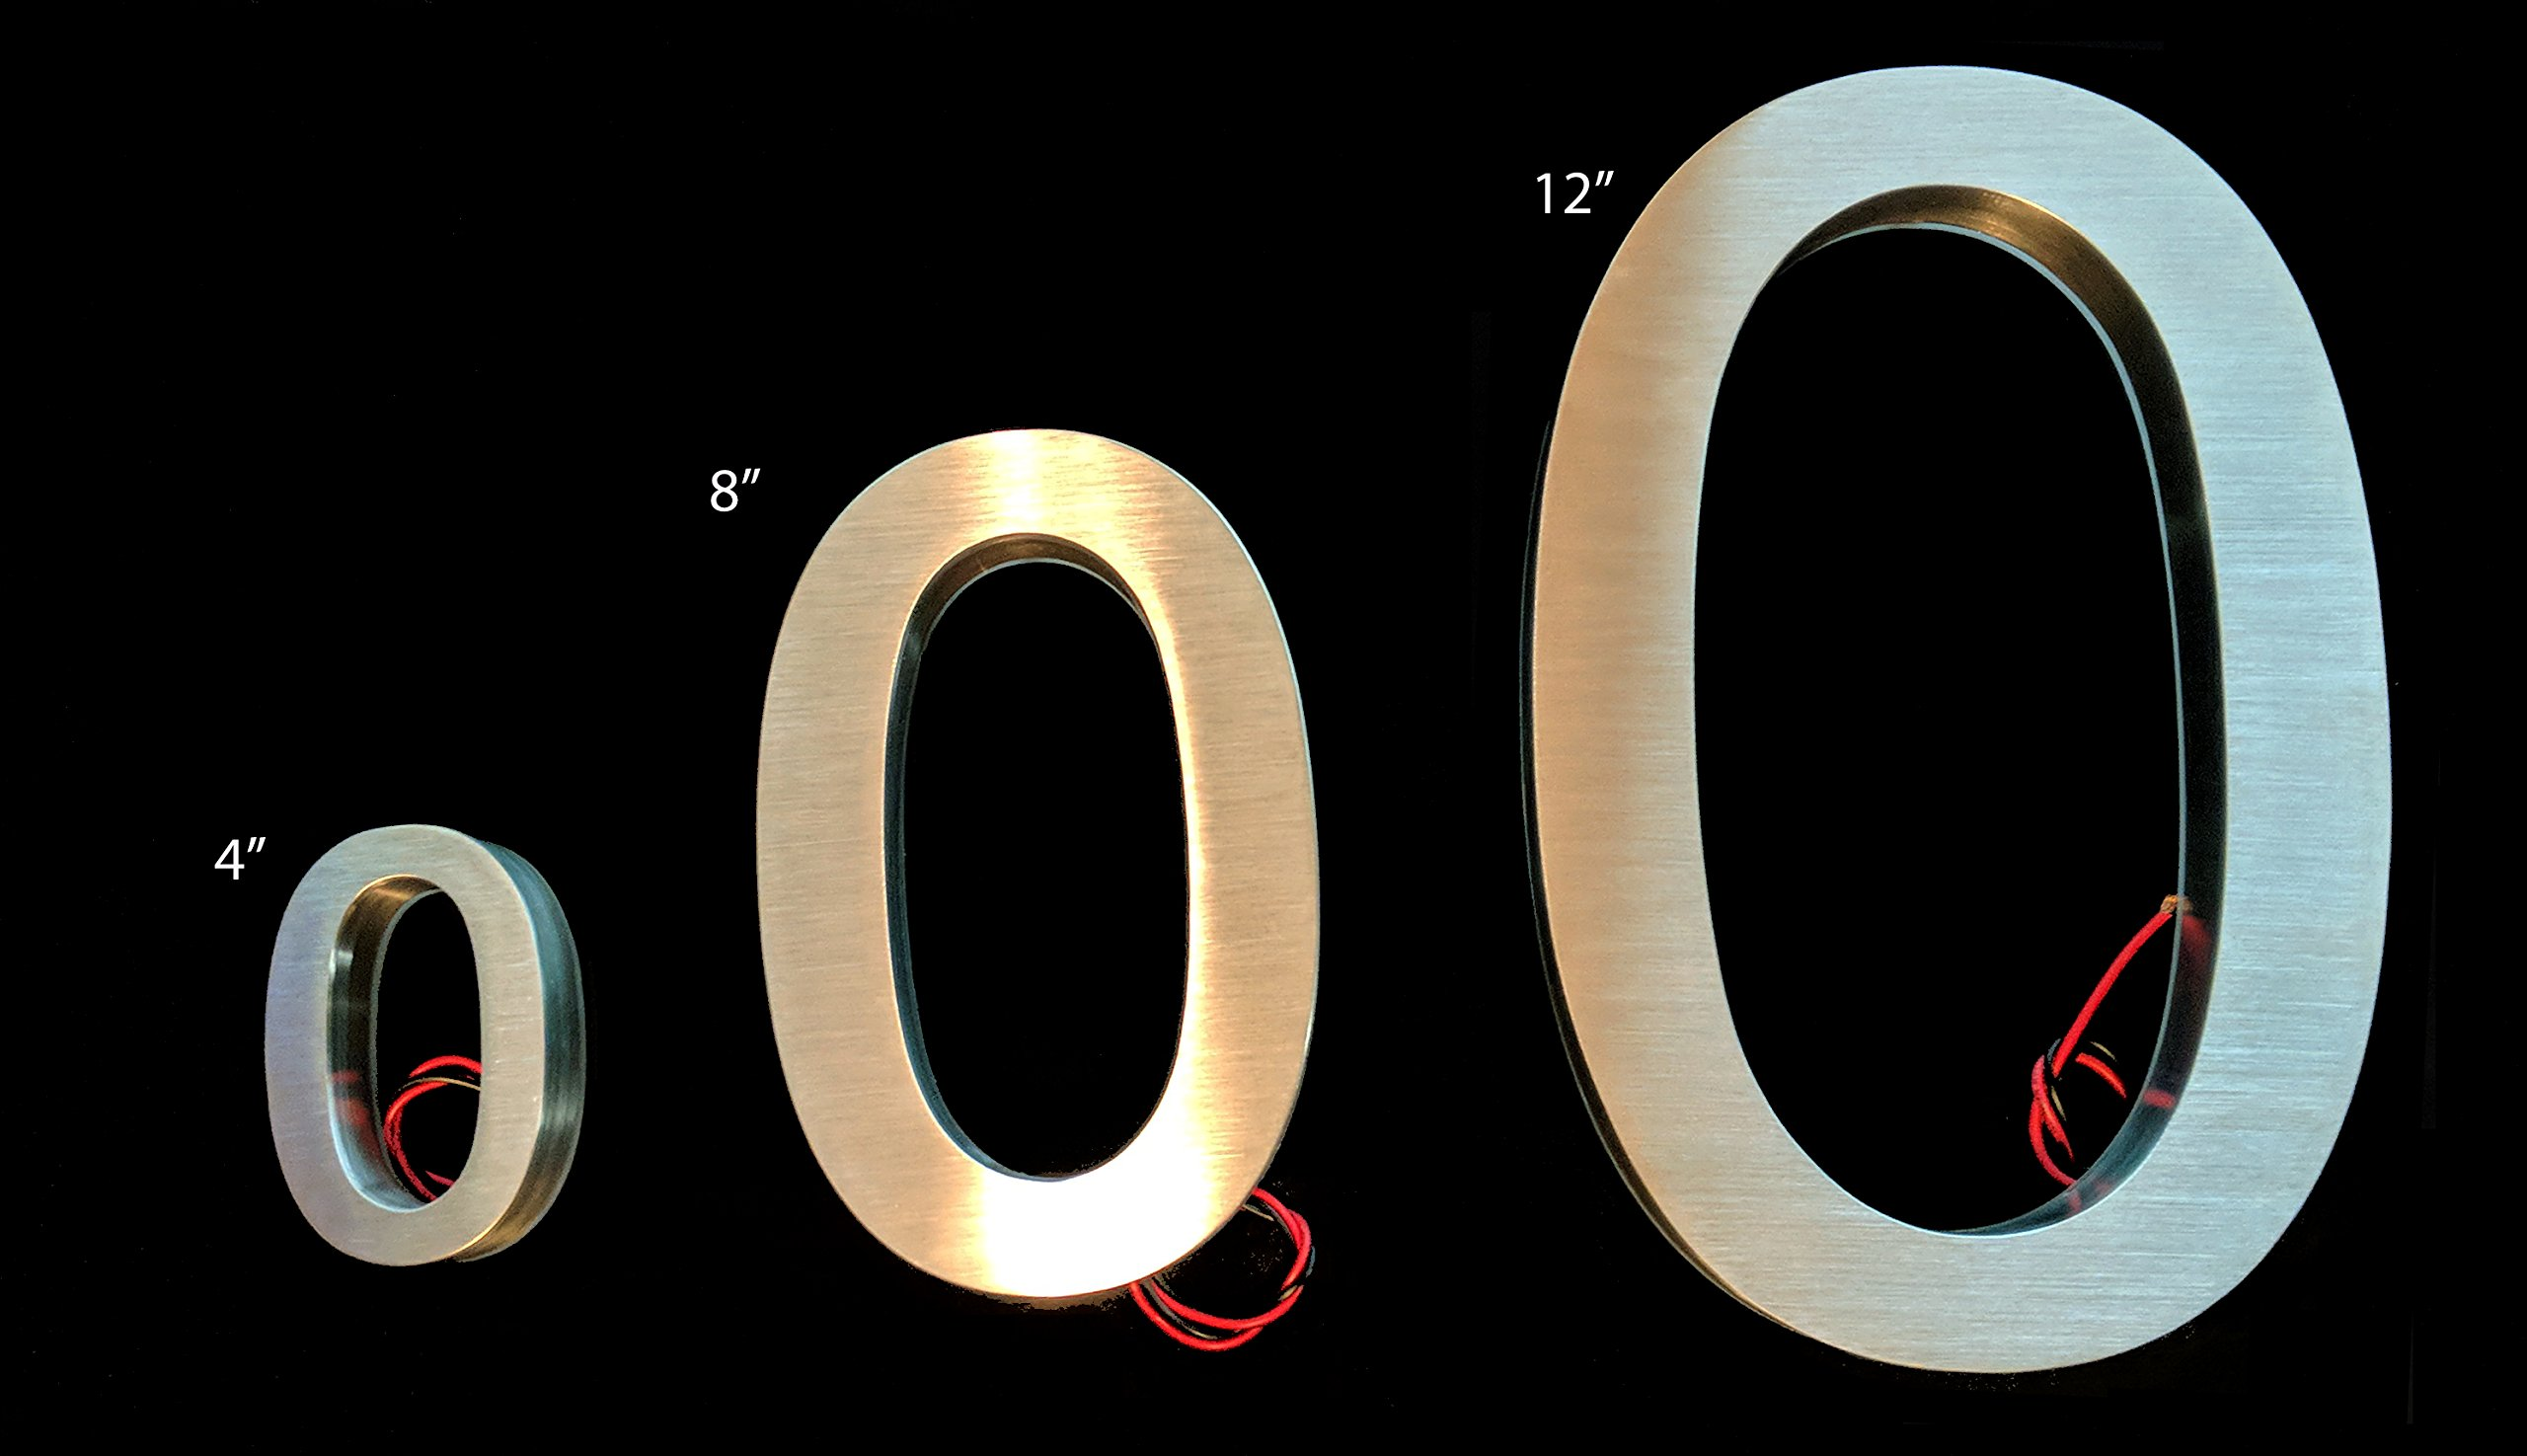 LED House numbers by JELSCO | Modern Big sign address numbers 4 Inches White (0)